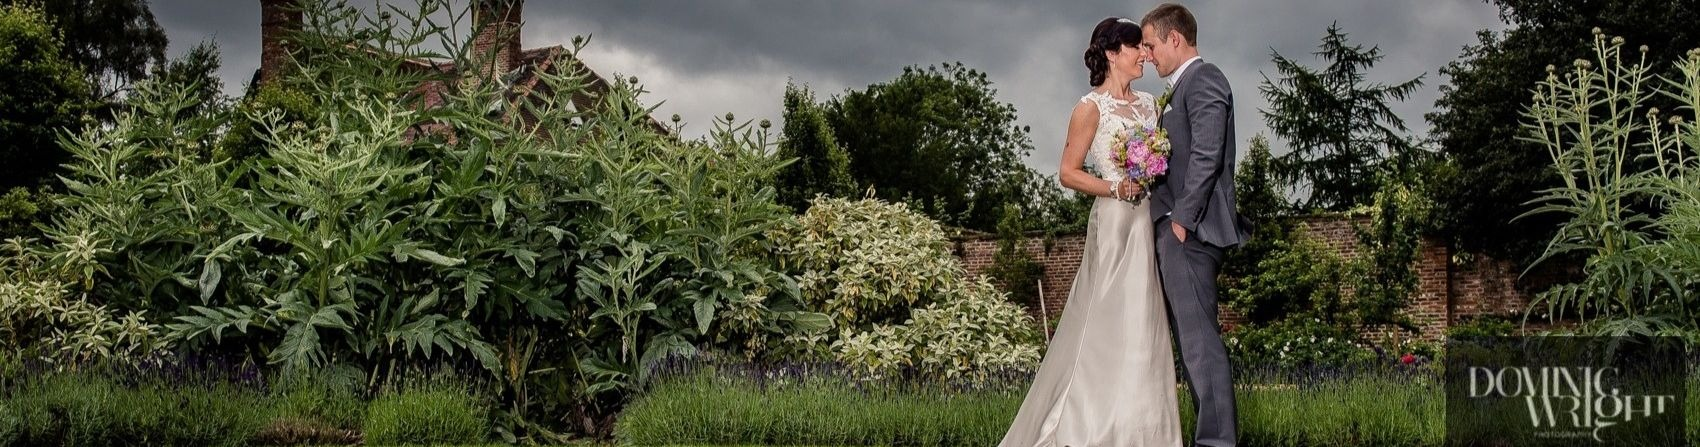 Wedding garden venue York and Selby